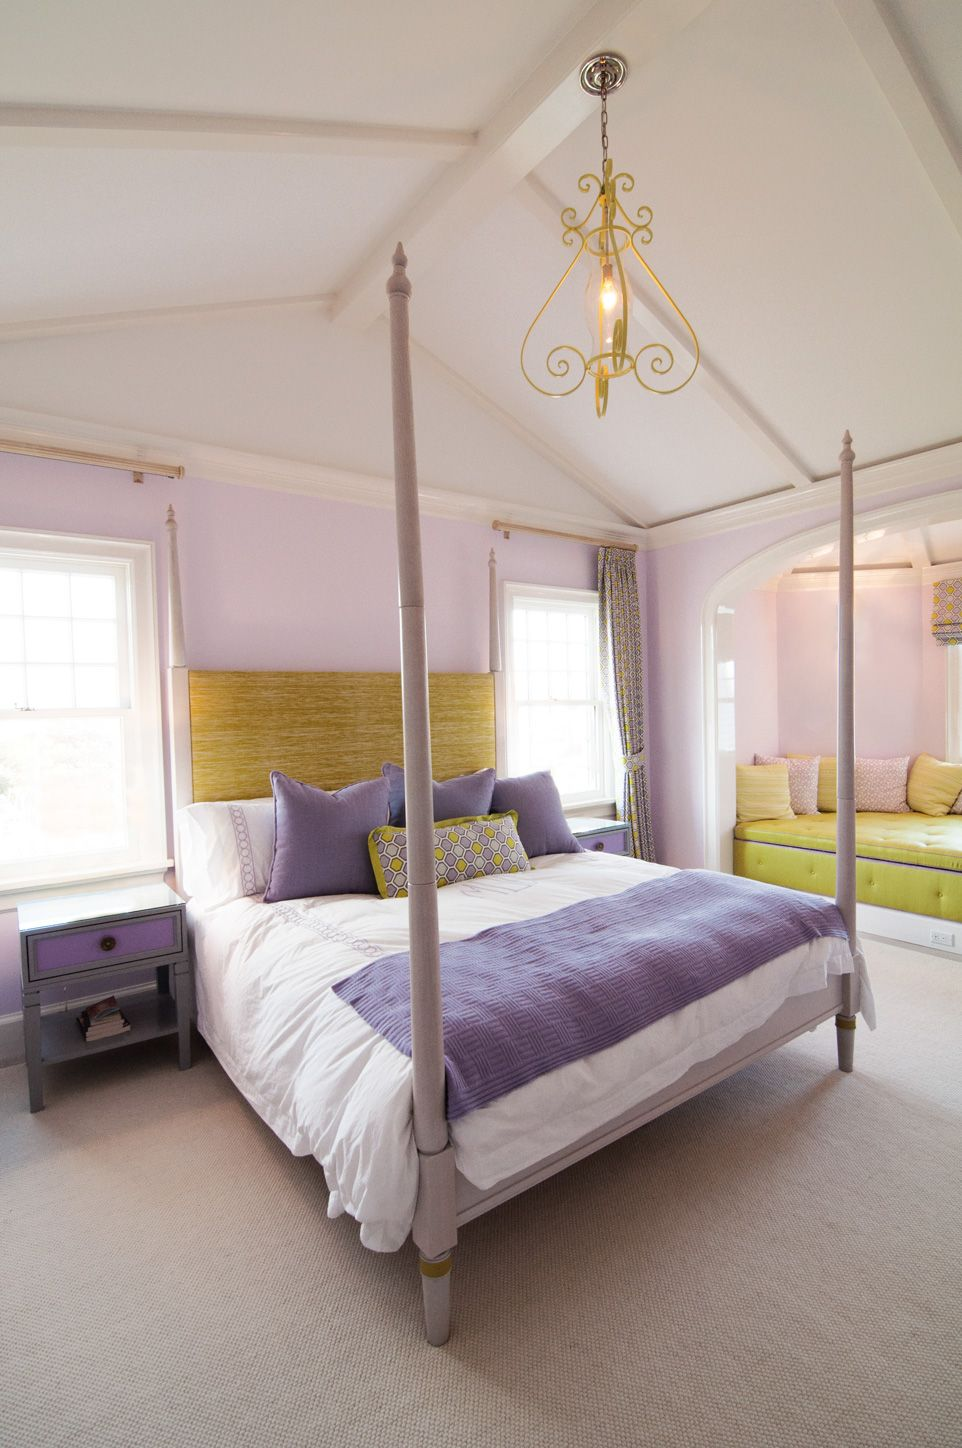 Check out this image from The Urban Electric Co. Bedroom